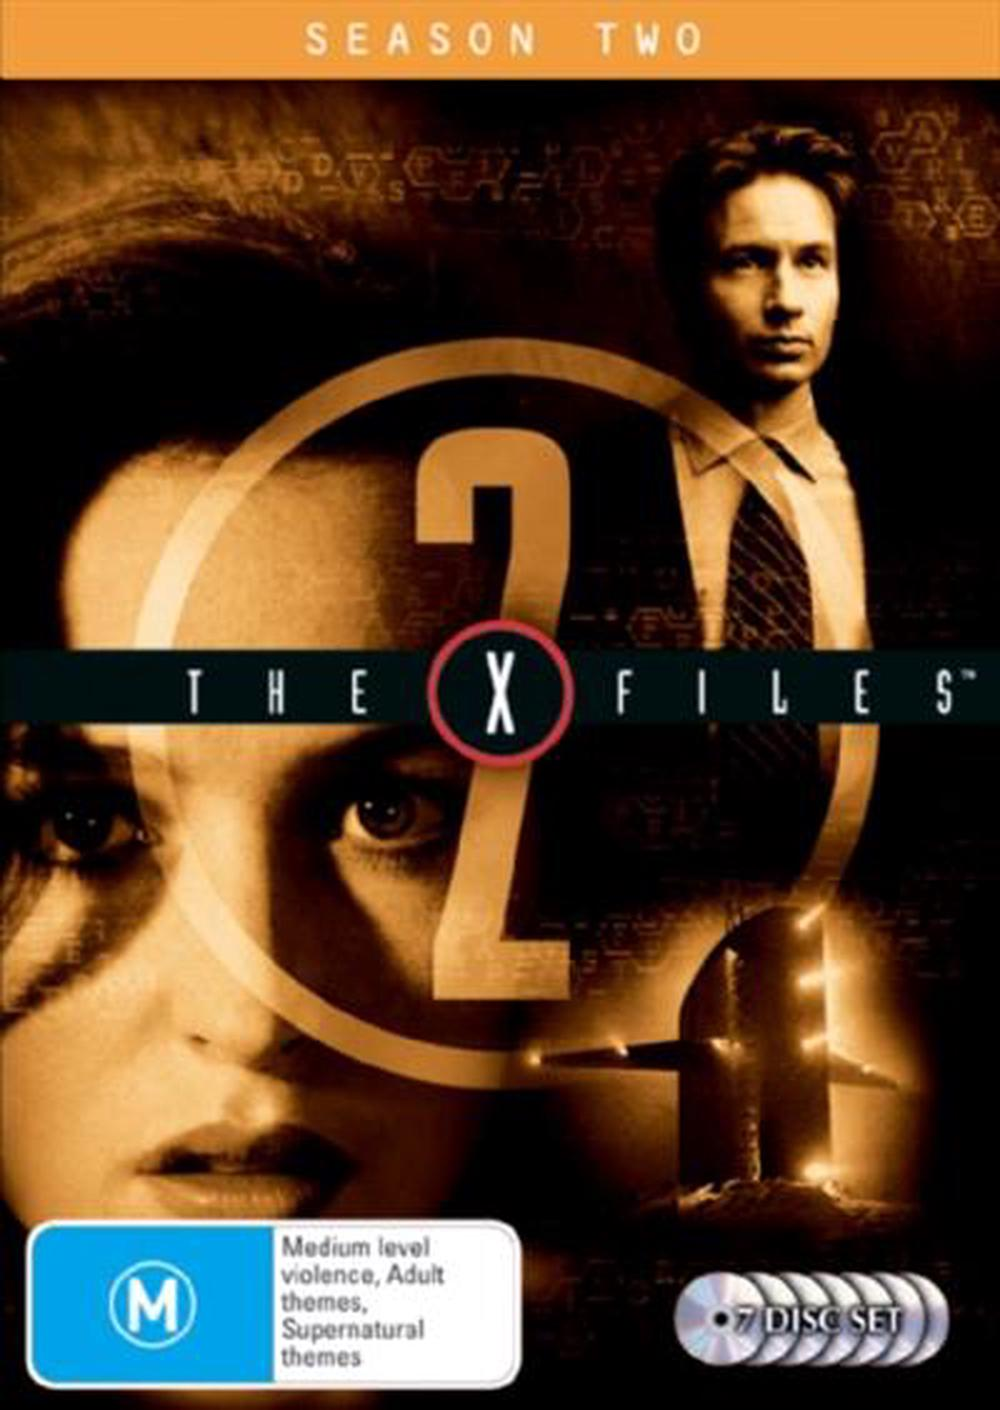 The X Files: Season 2